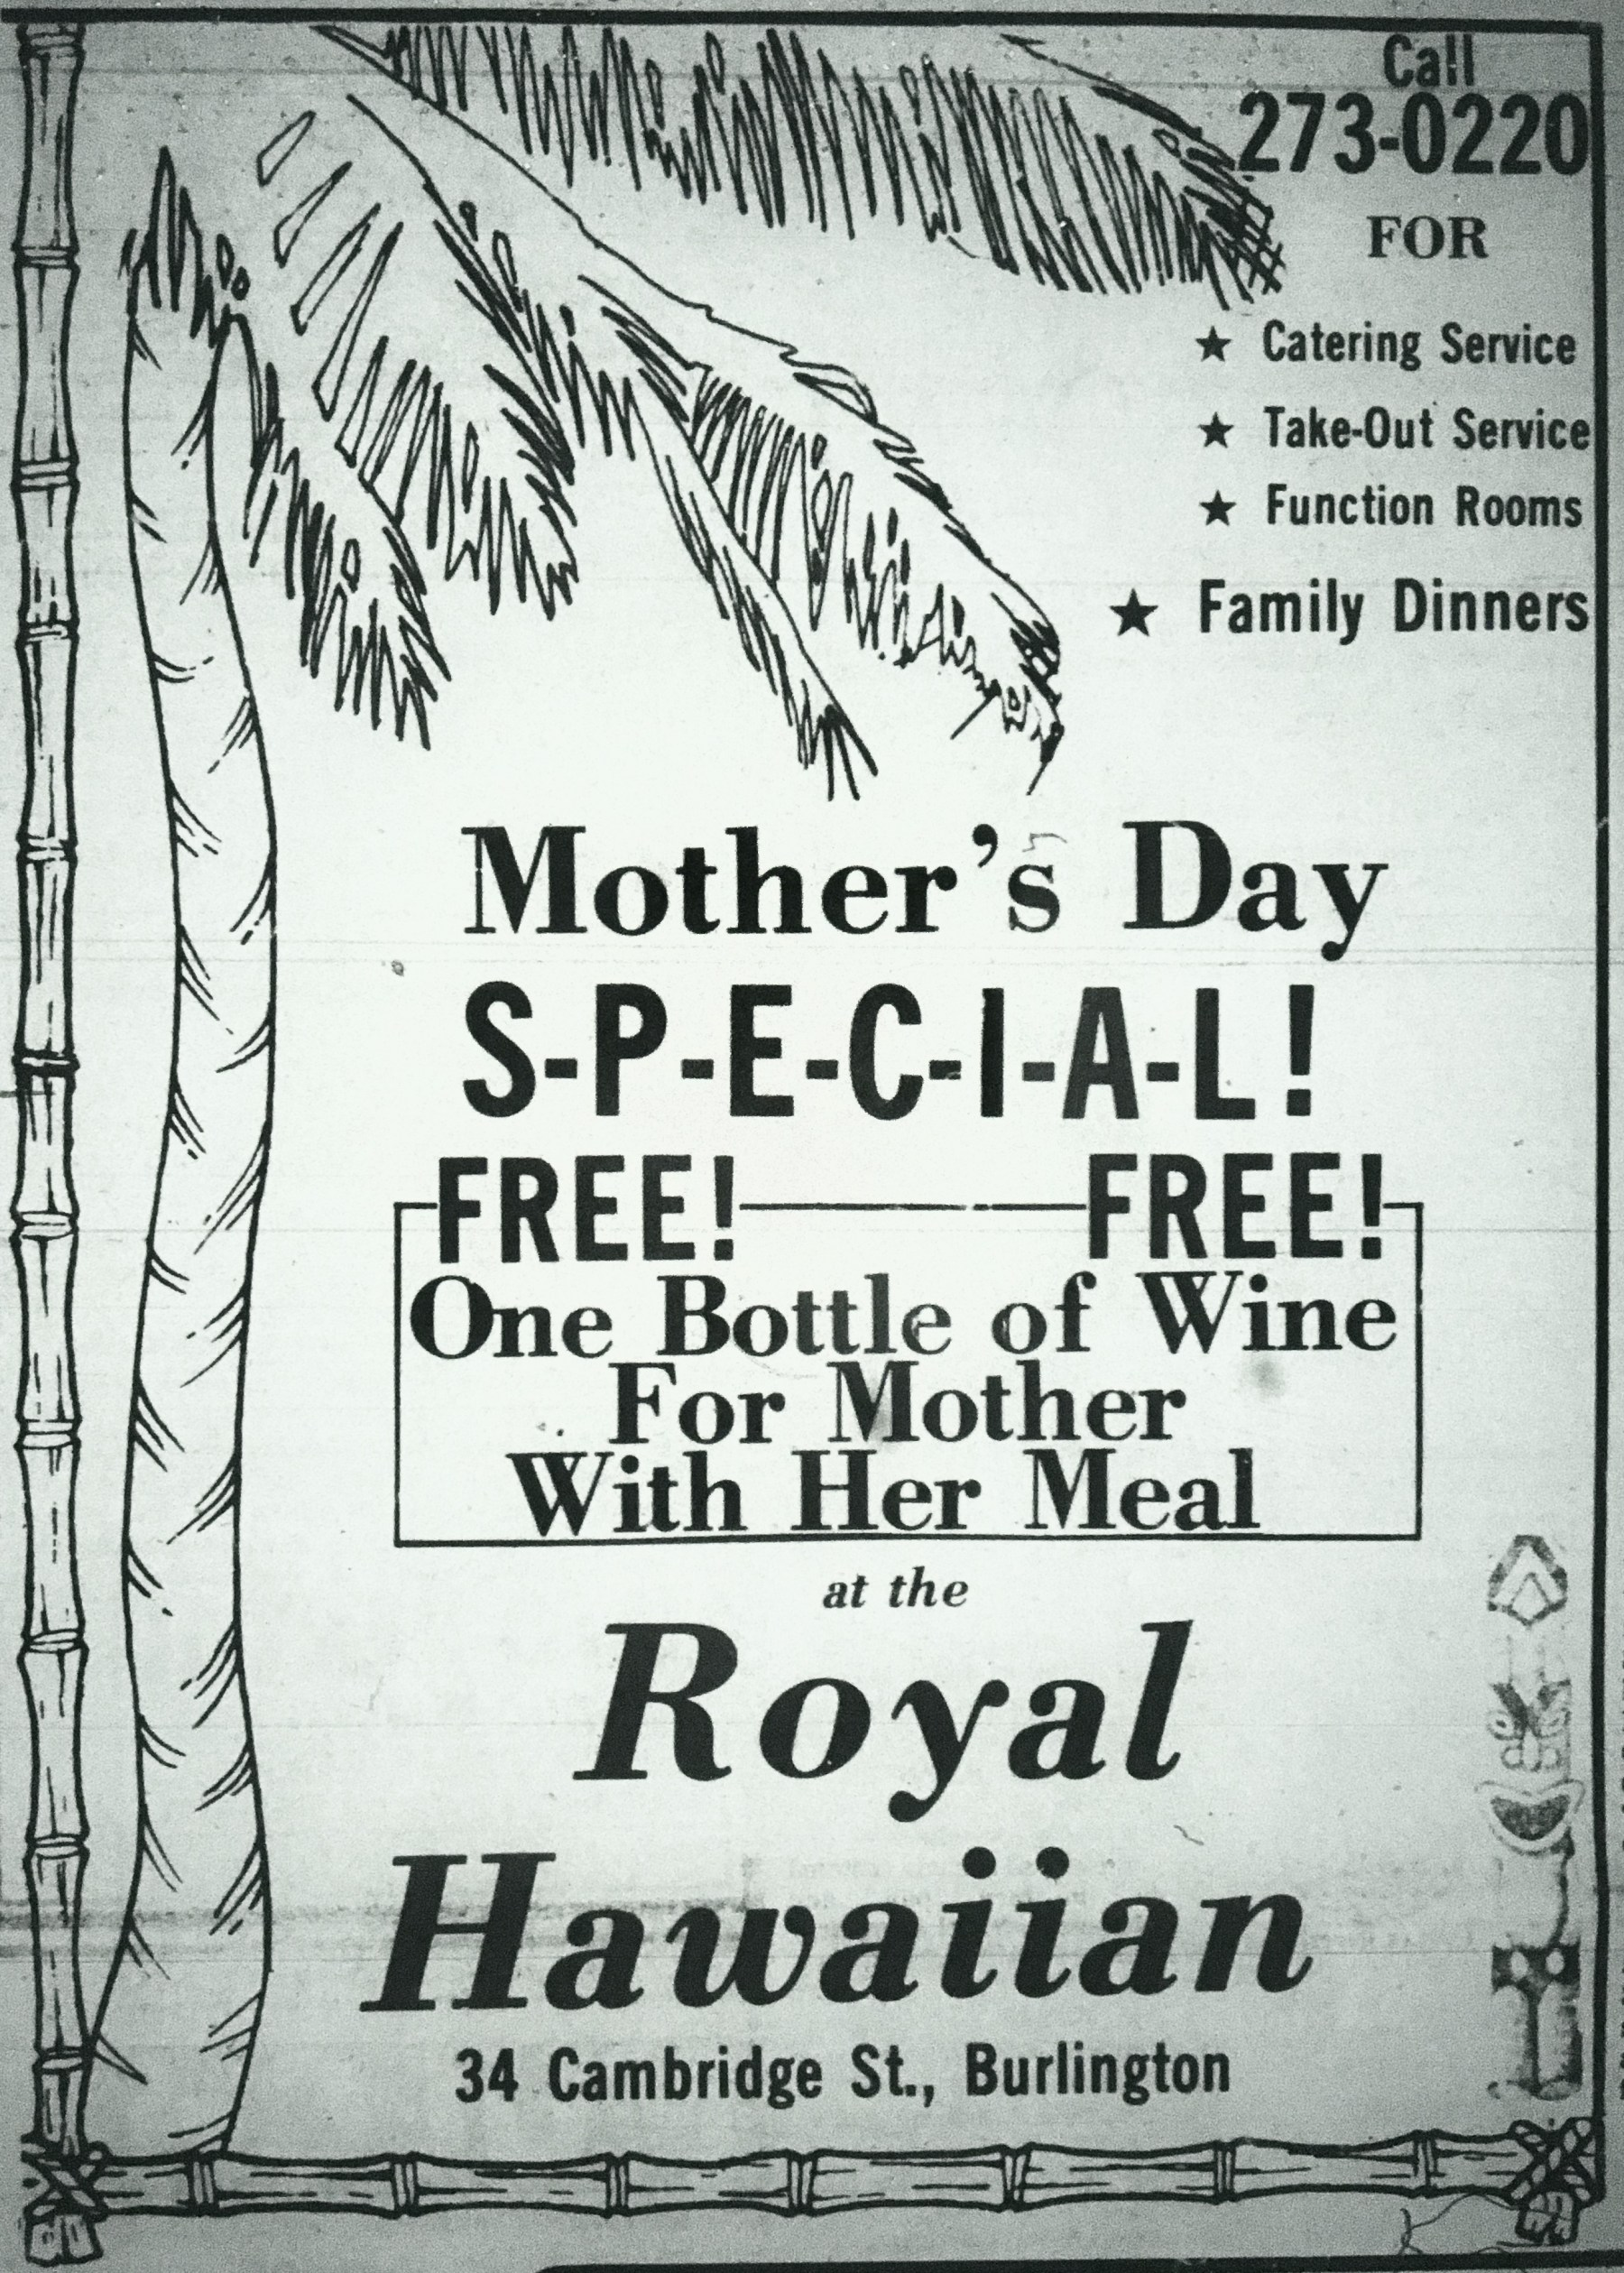 Royal Hawaiian, Burlington MA